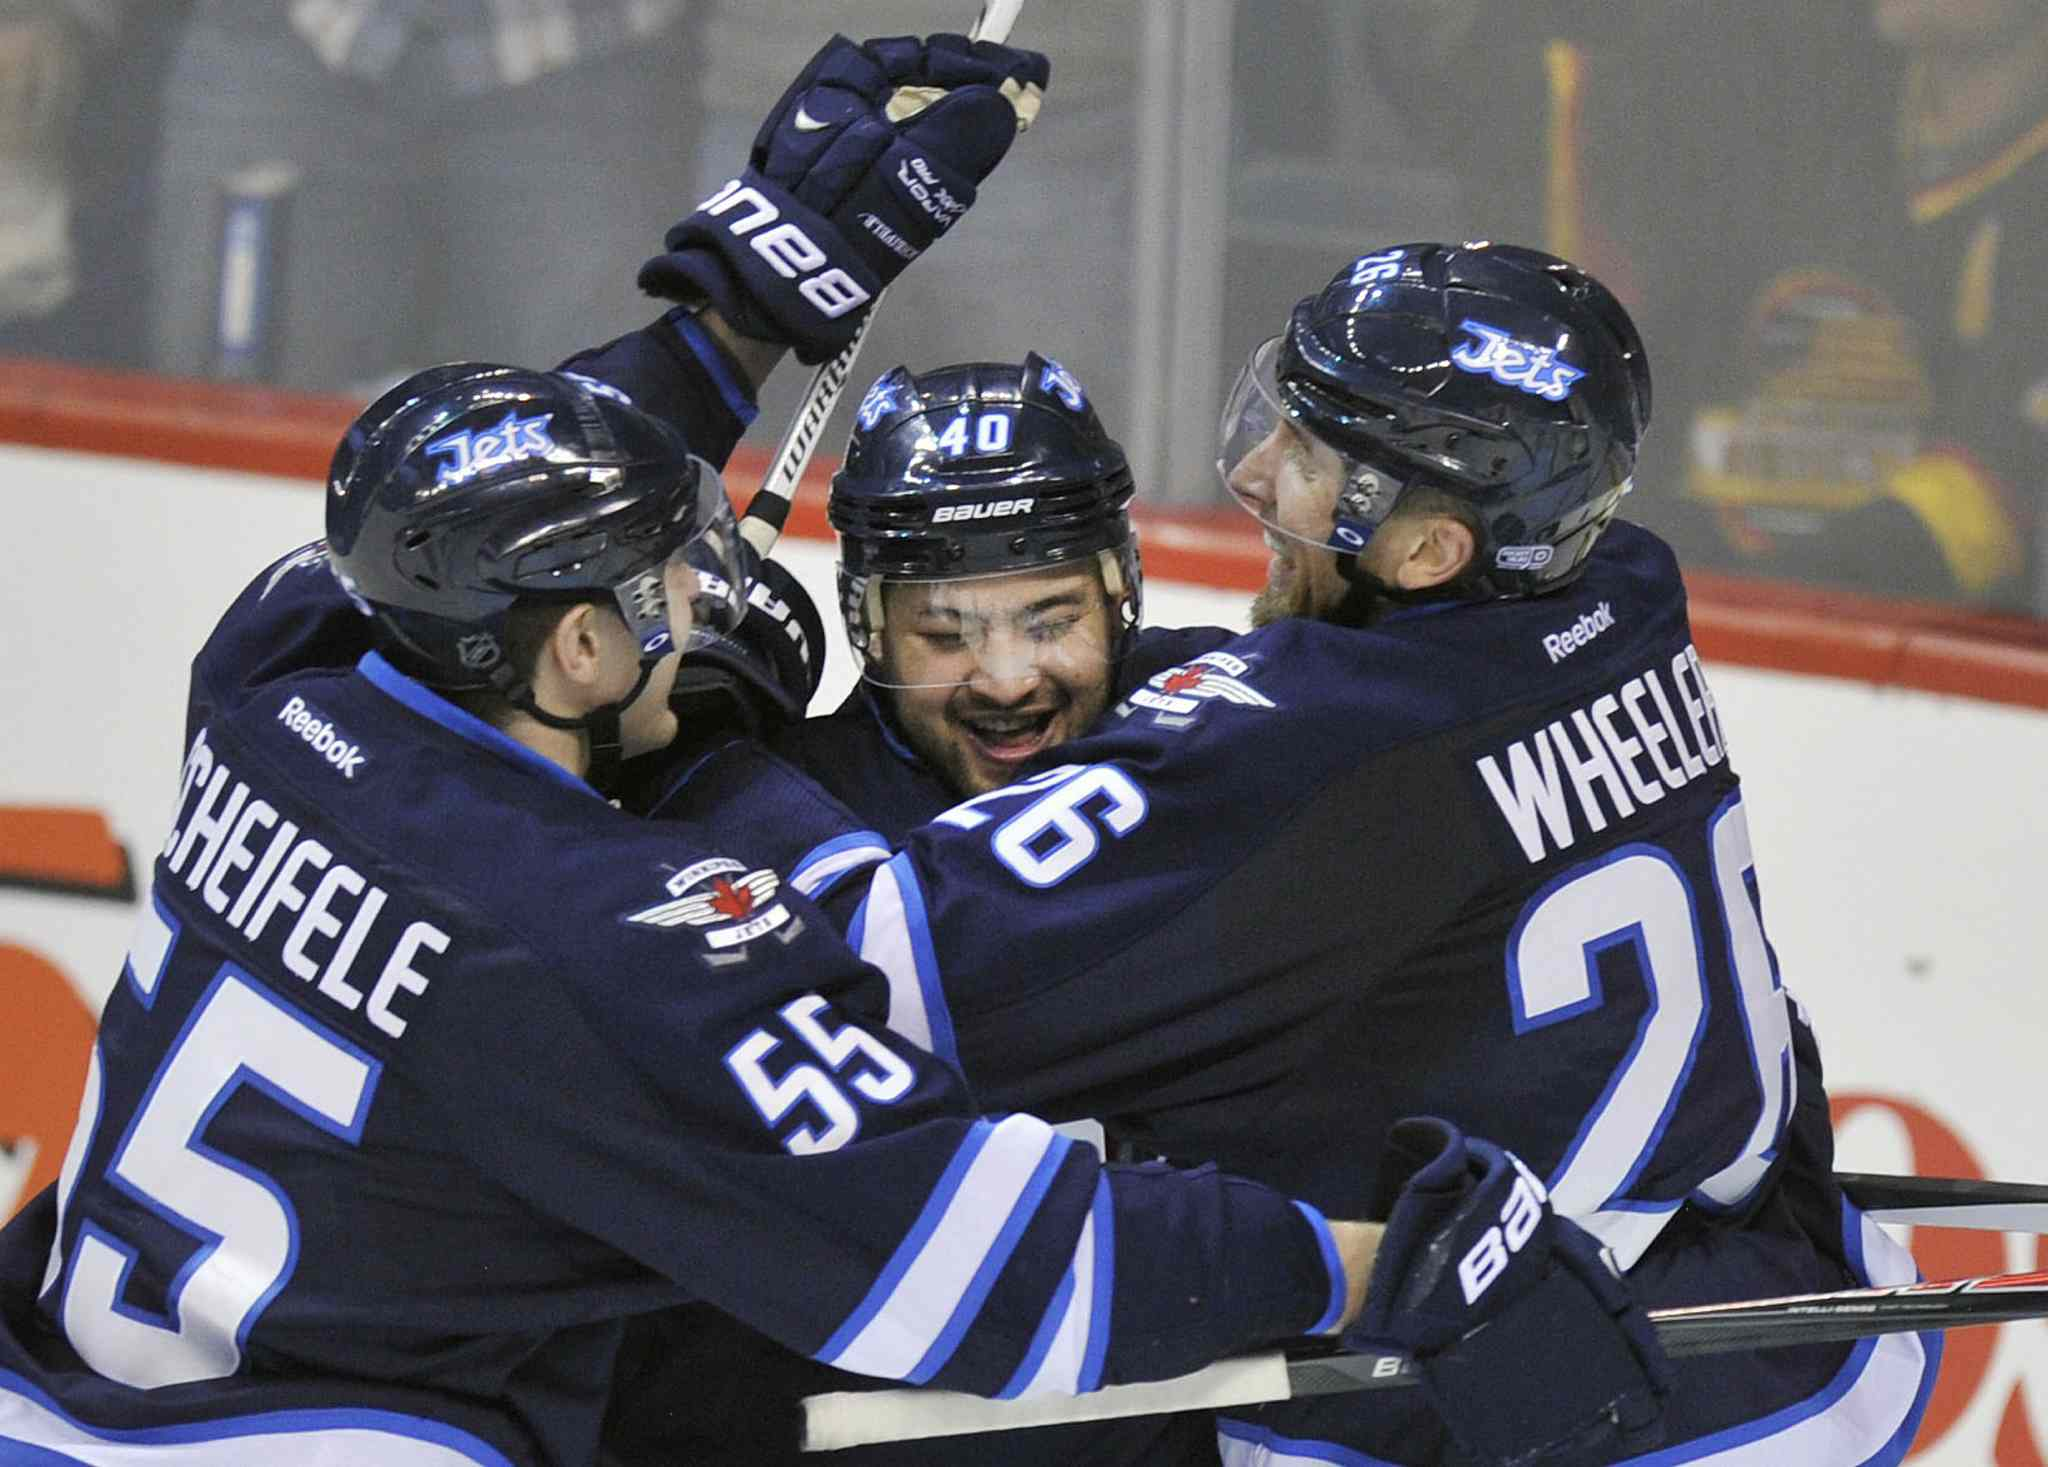 Winnipeg Jets' Devin Setoguchi is congratulated by teammates Mark Scheifele, left, and Blake Wheeler after scoring the game-winning goal against the Vancouver Canucks in Winnipeg Friday night. The Jets beat the Canucks 4-3.